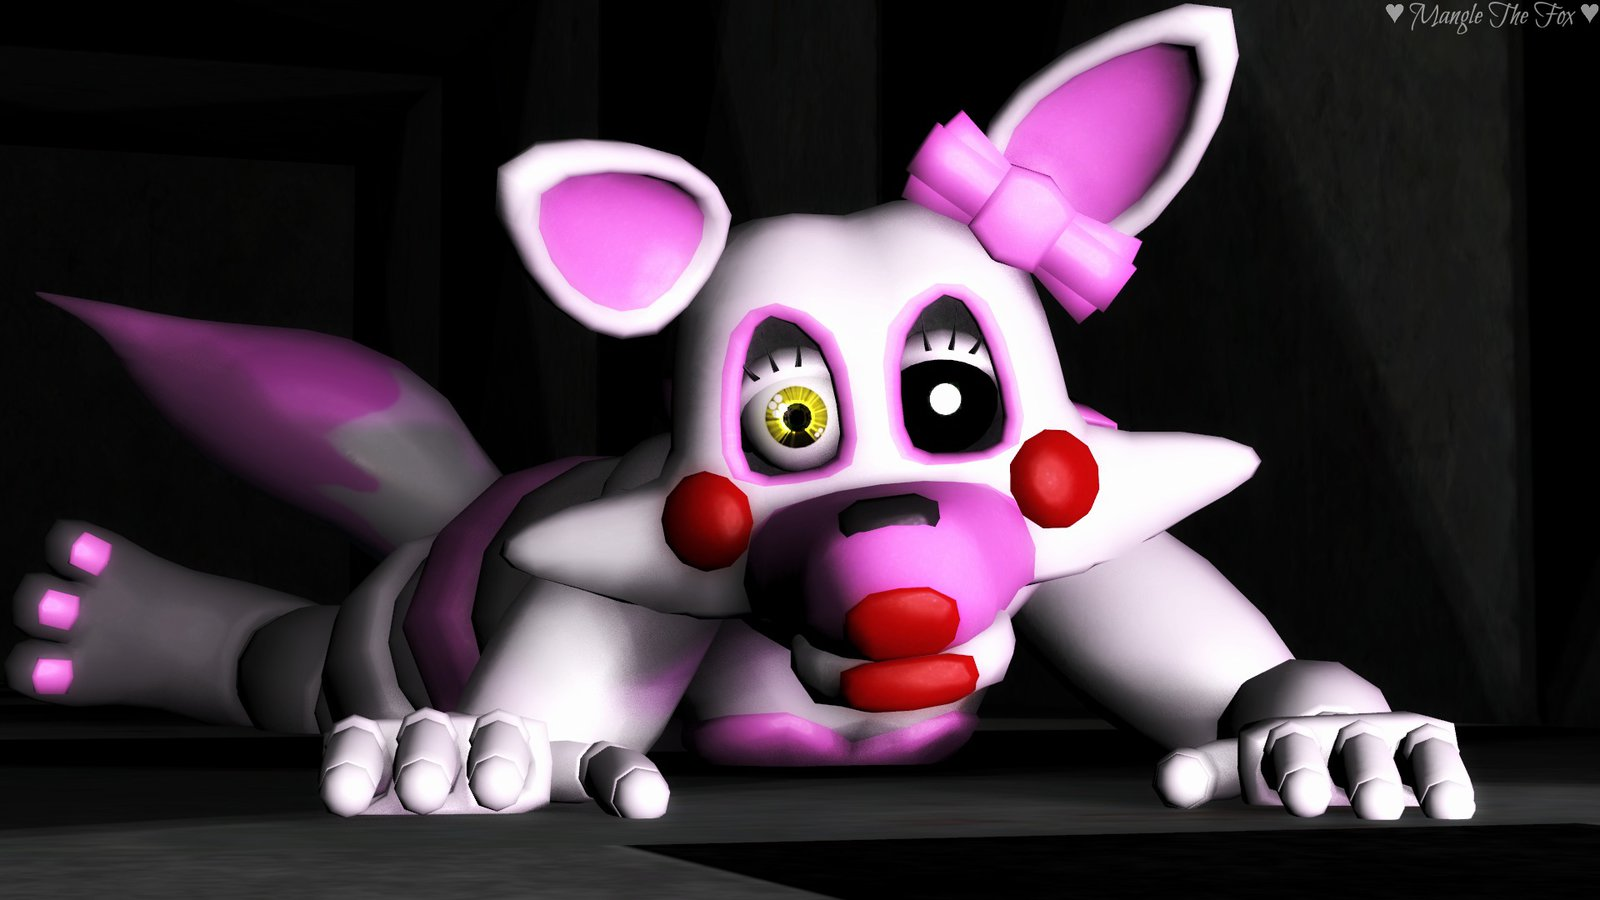 fnaf sfm baby mangle crawling in the vent によって manglethefoxsfm da5zptn